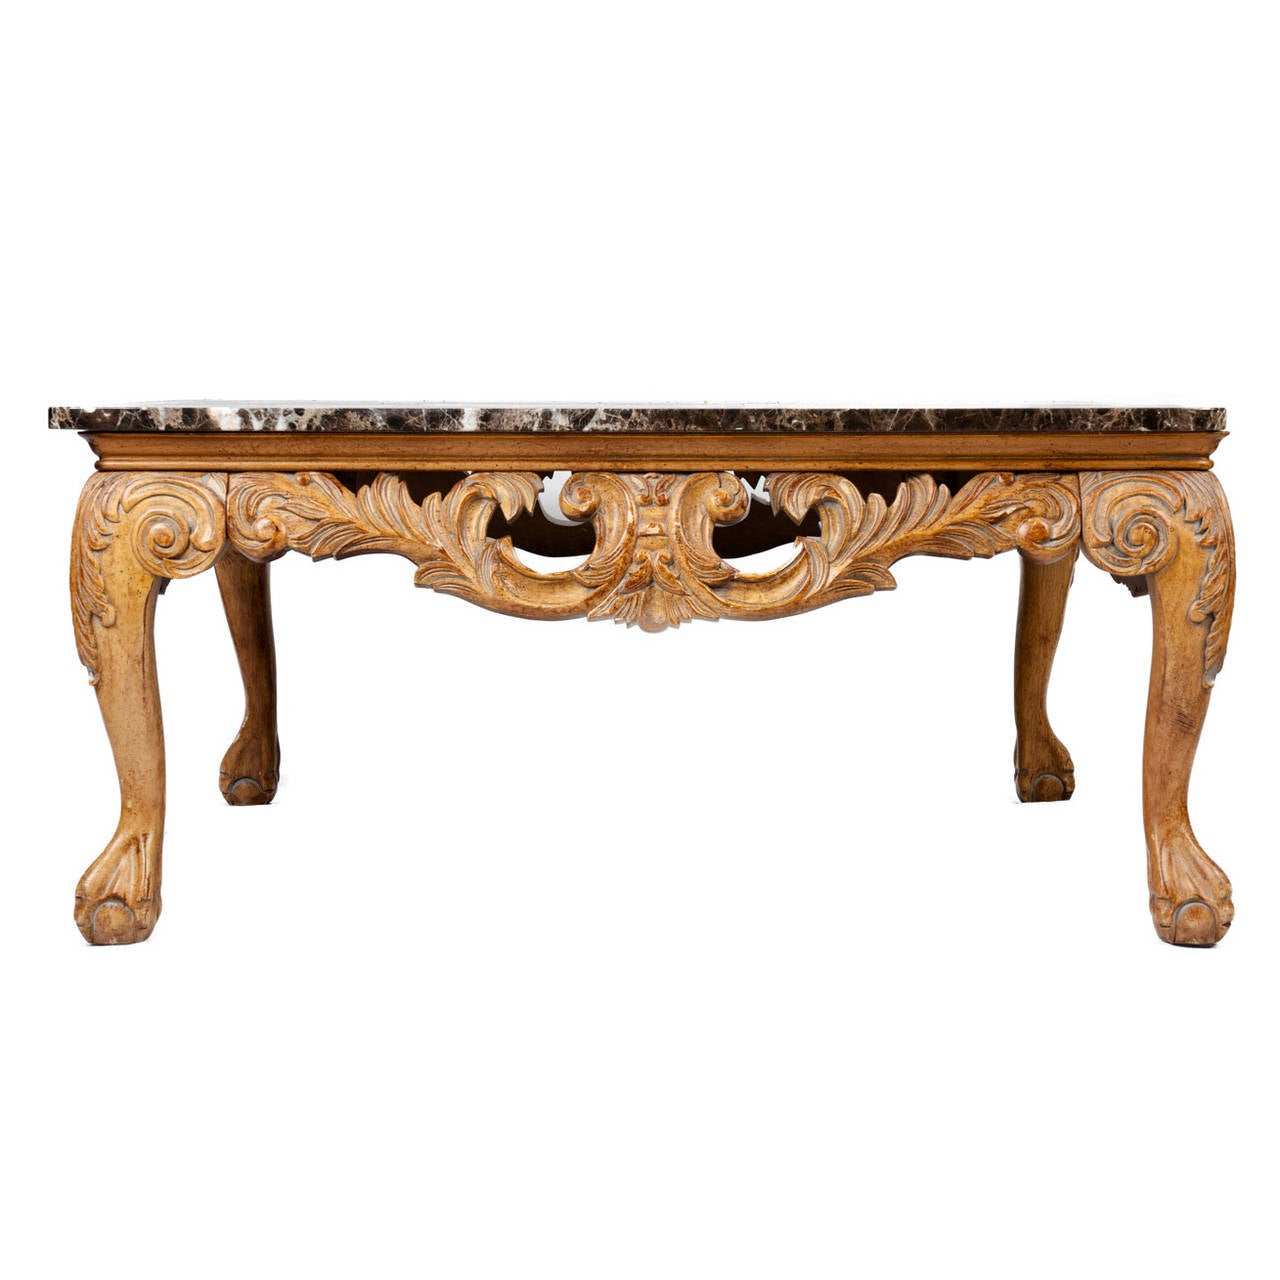 Antique Marble Top Coffee Table: Vintage European Marble-Top Coffee Table At 1stdibs